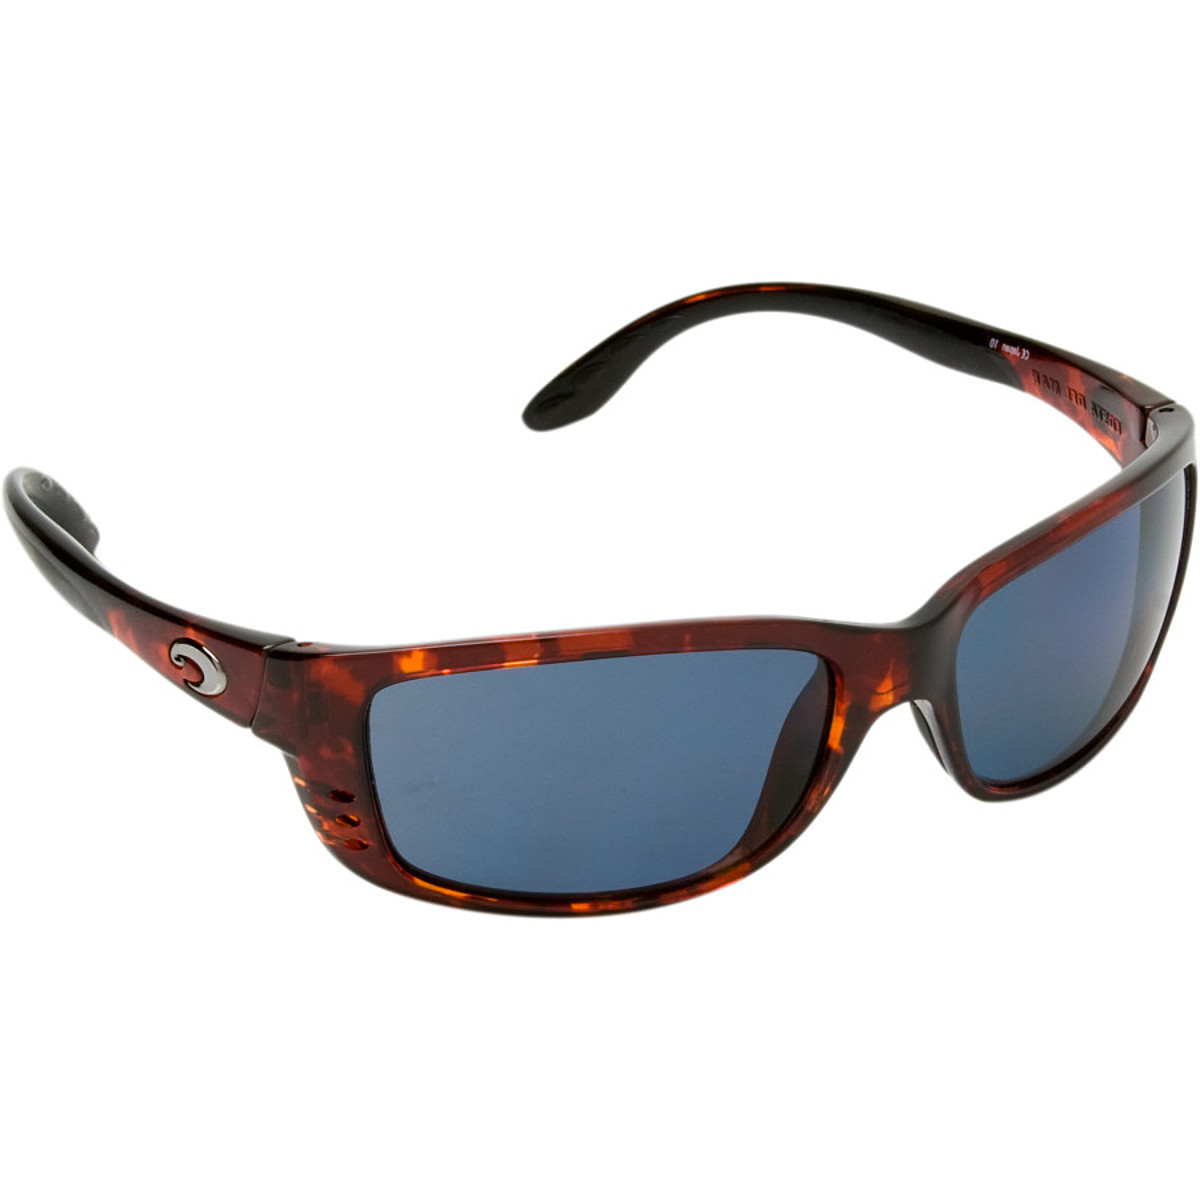 Costa Zane Polarized 580P Sunglasses - Women's